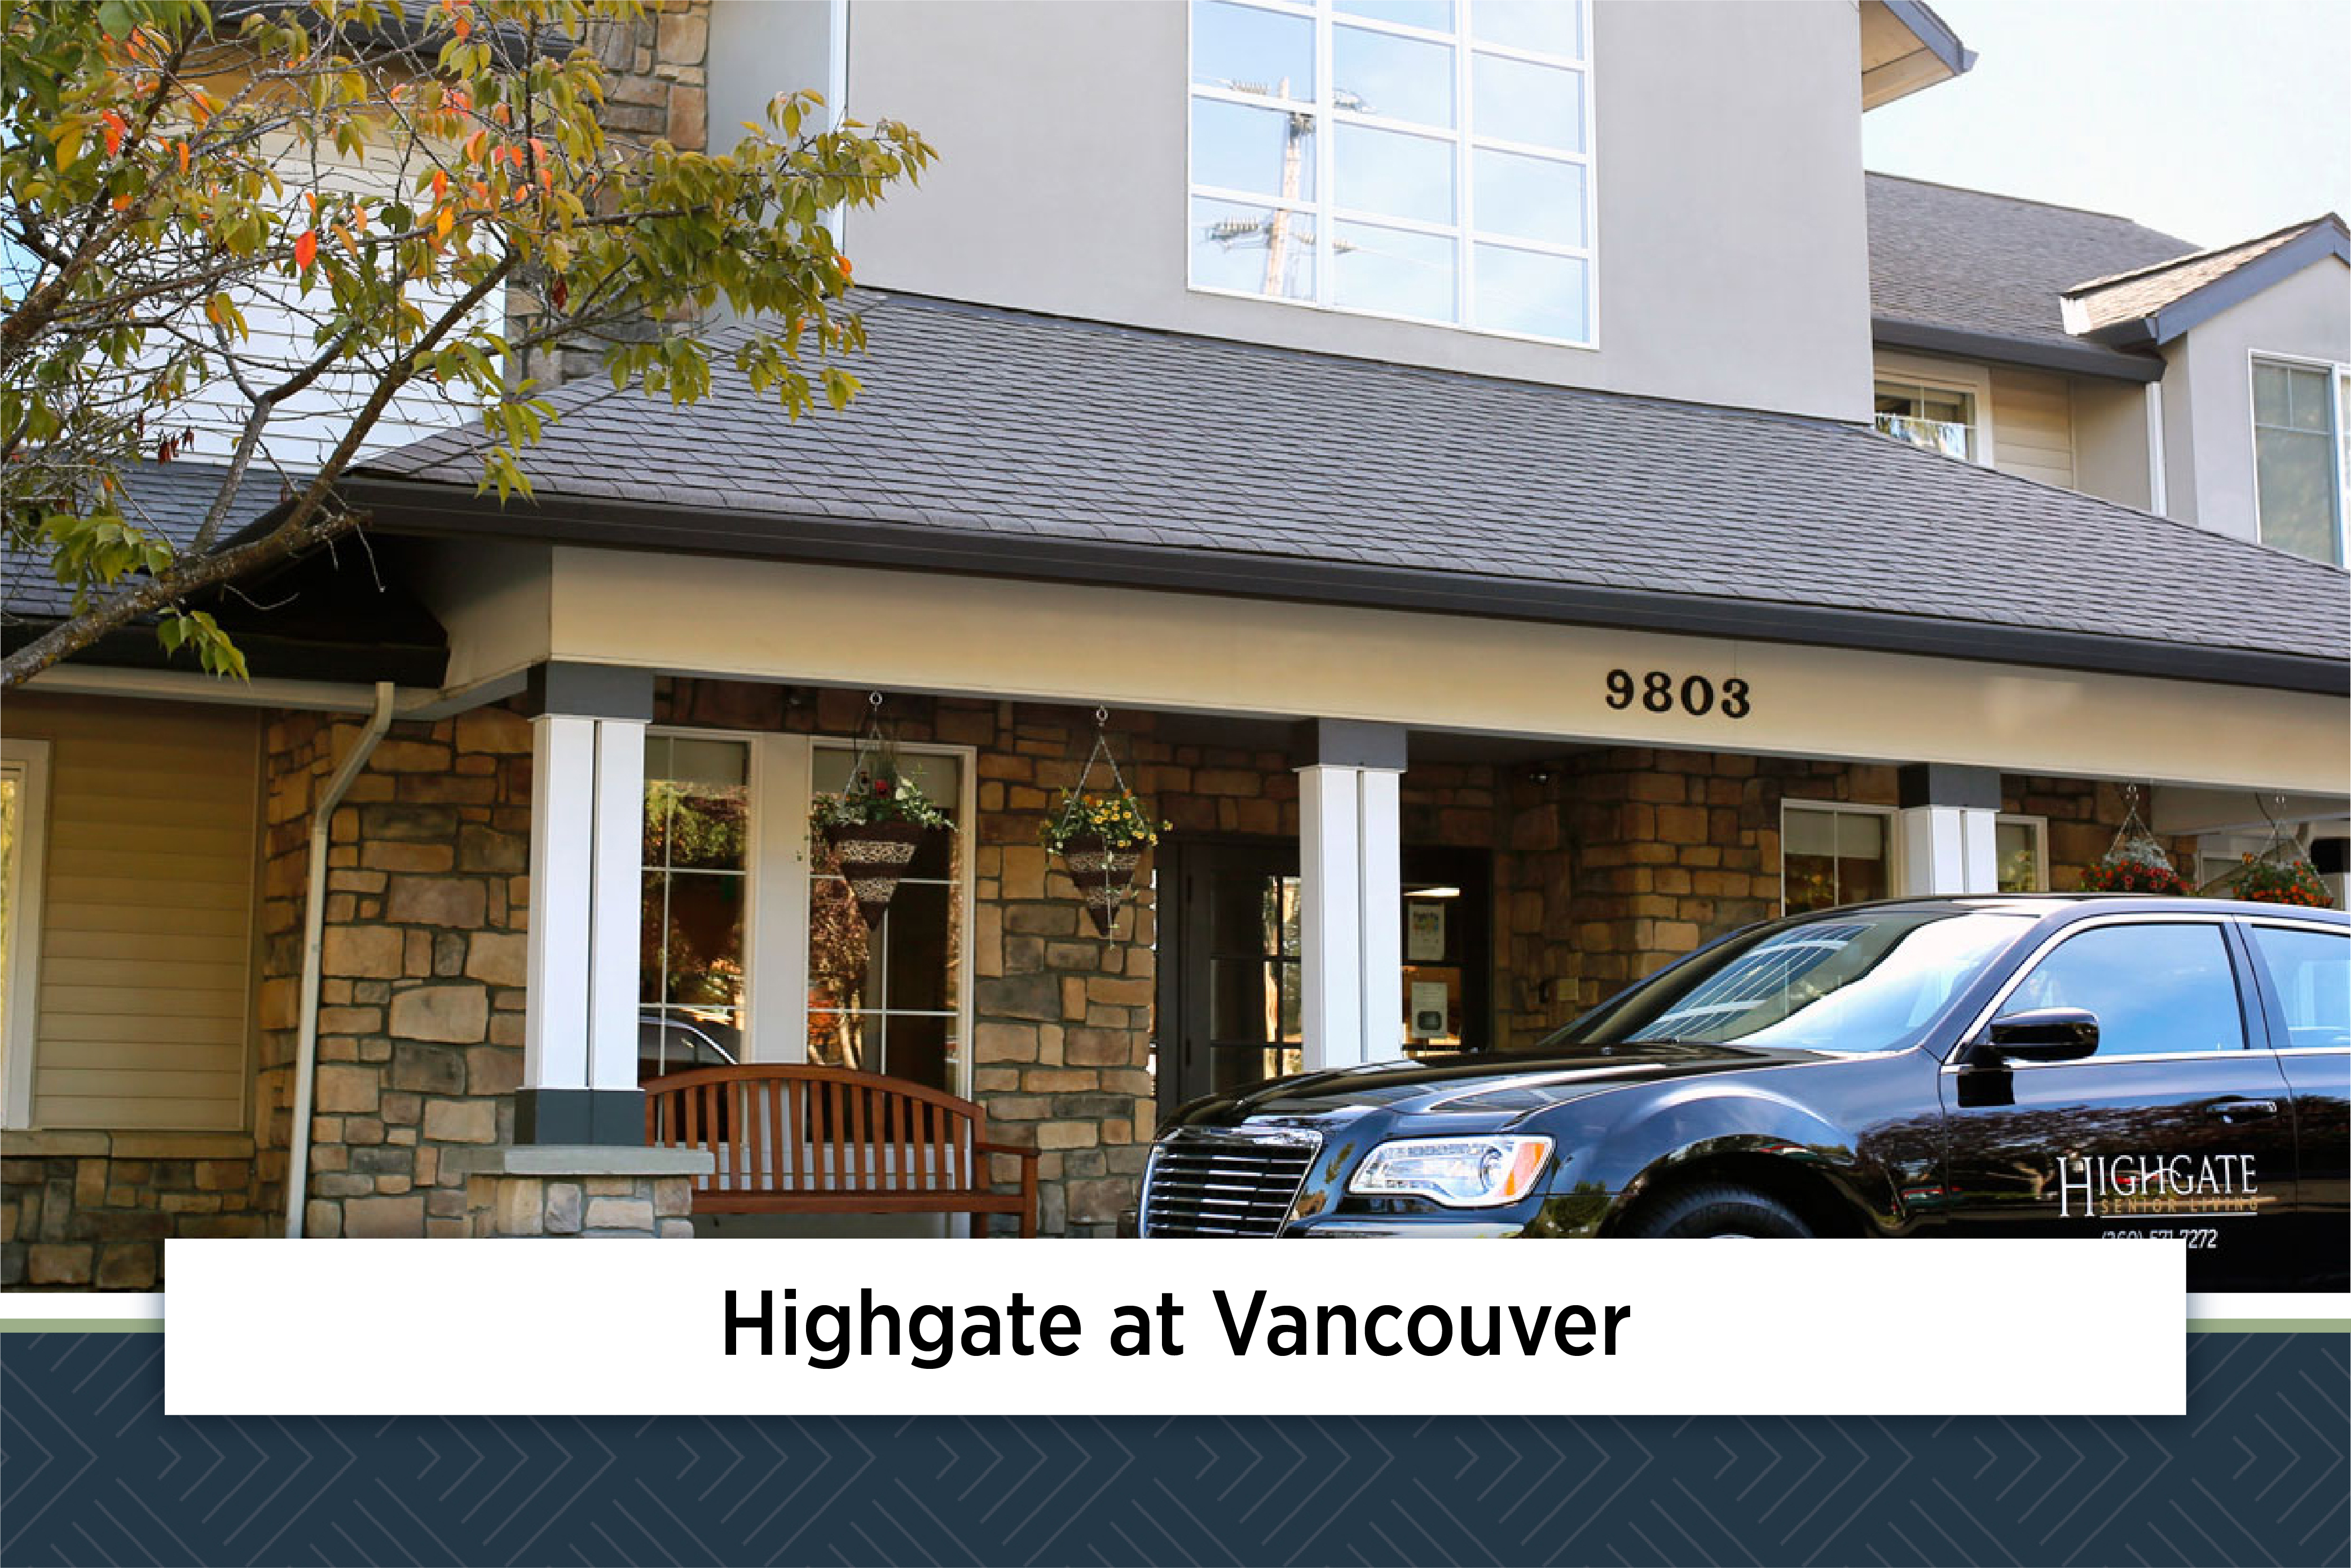 Highgate at Vancouver